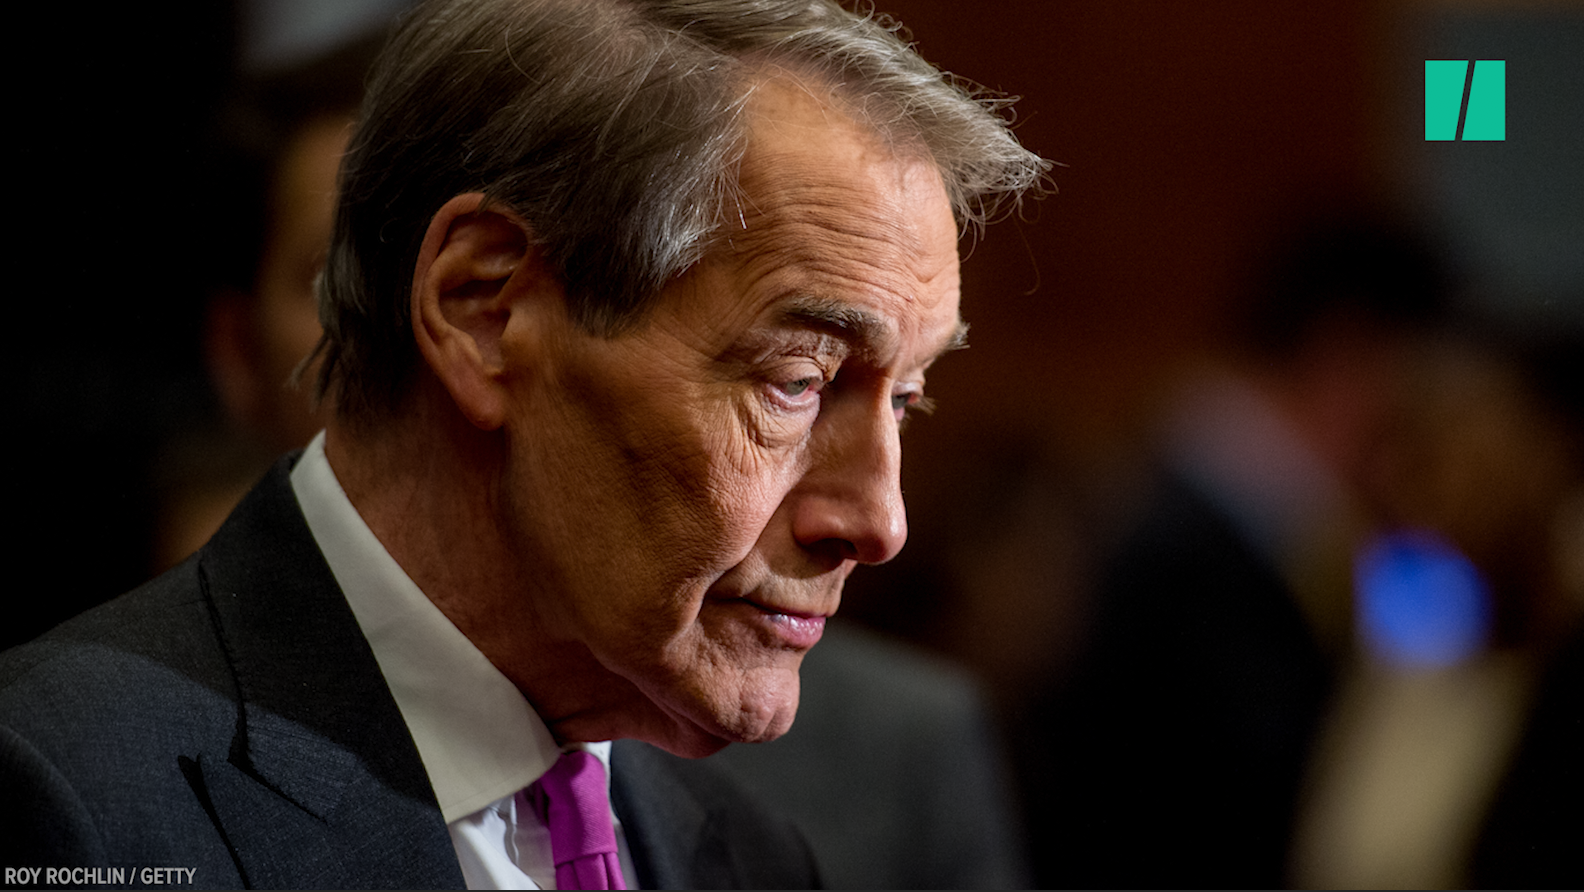 Two Journalism Schools Rescind Awards For Charlie Rose Amid Harassment Reports